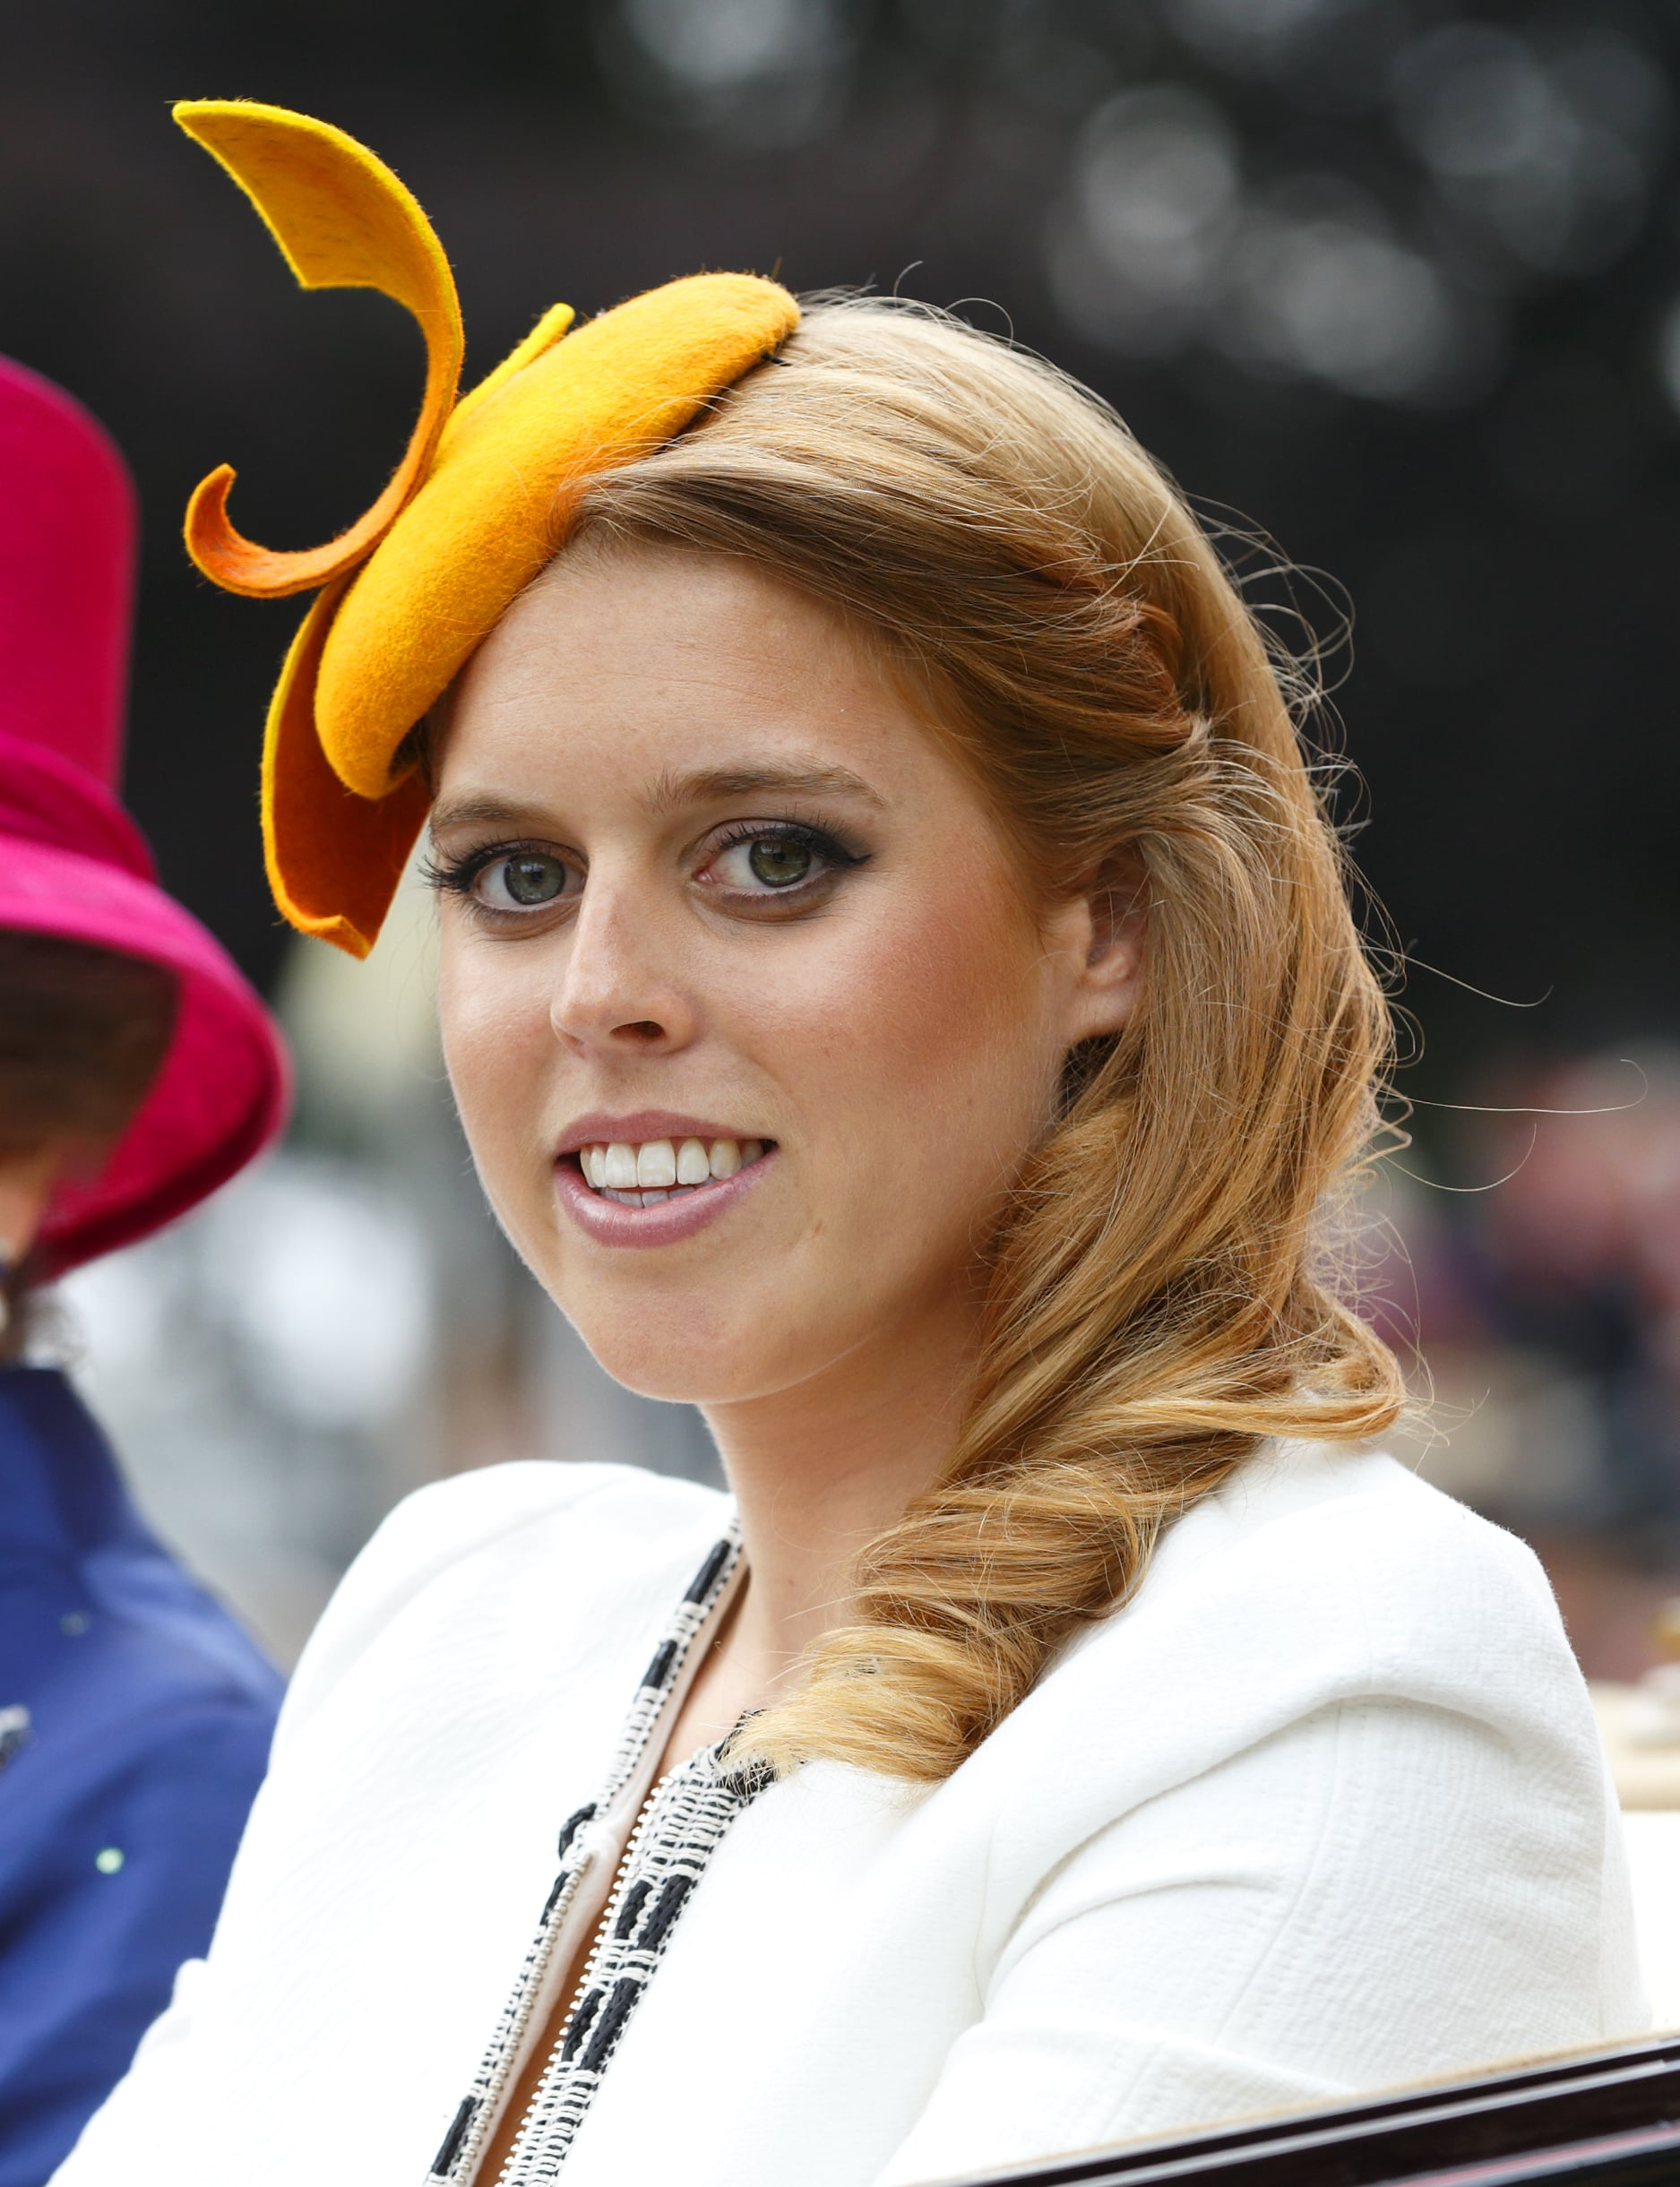 Princess Beatrice yellow headpiece